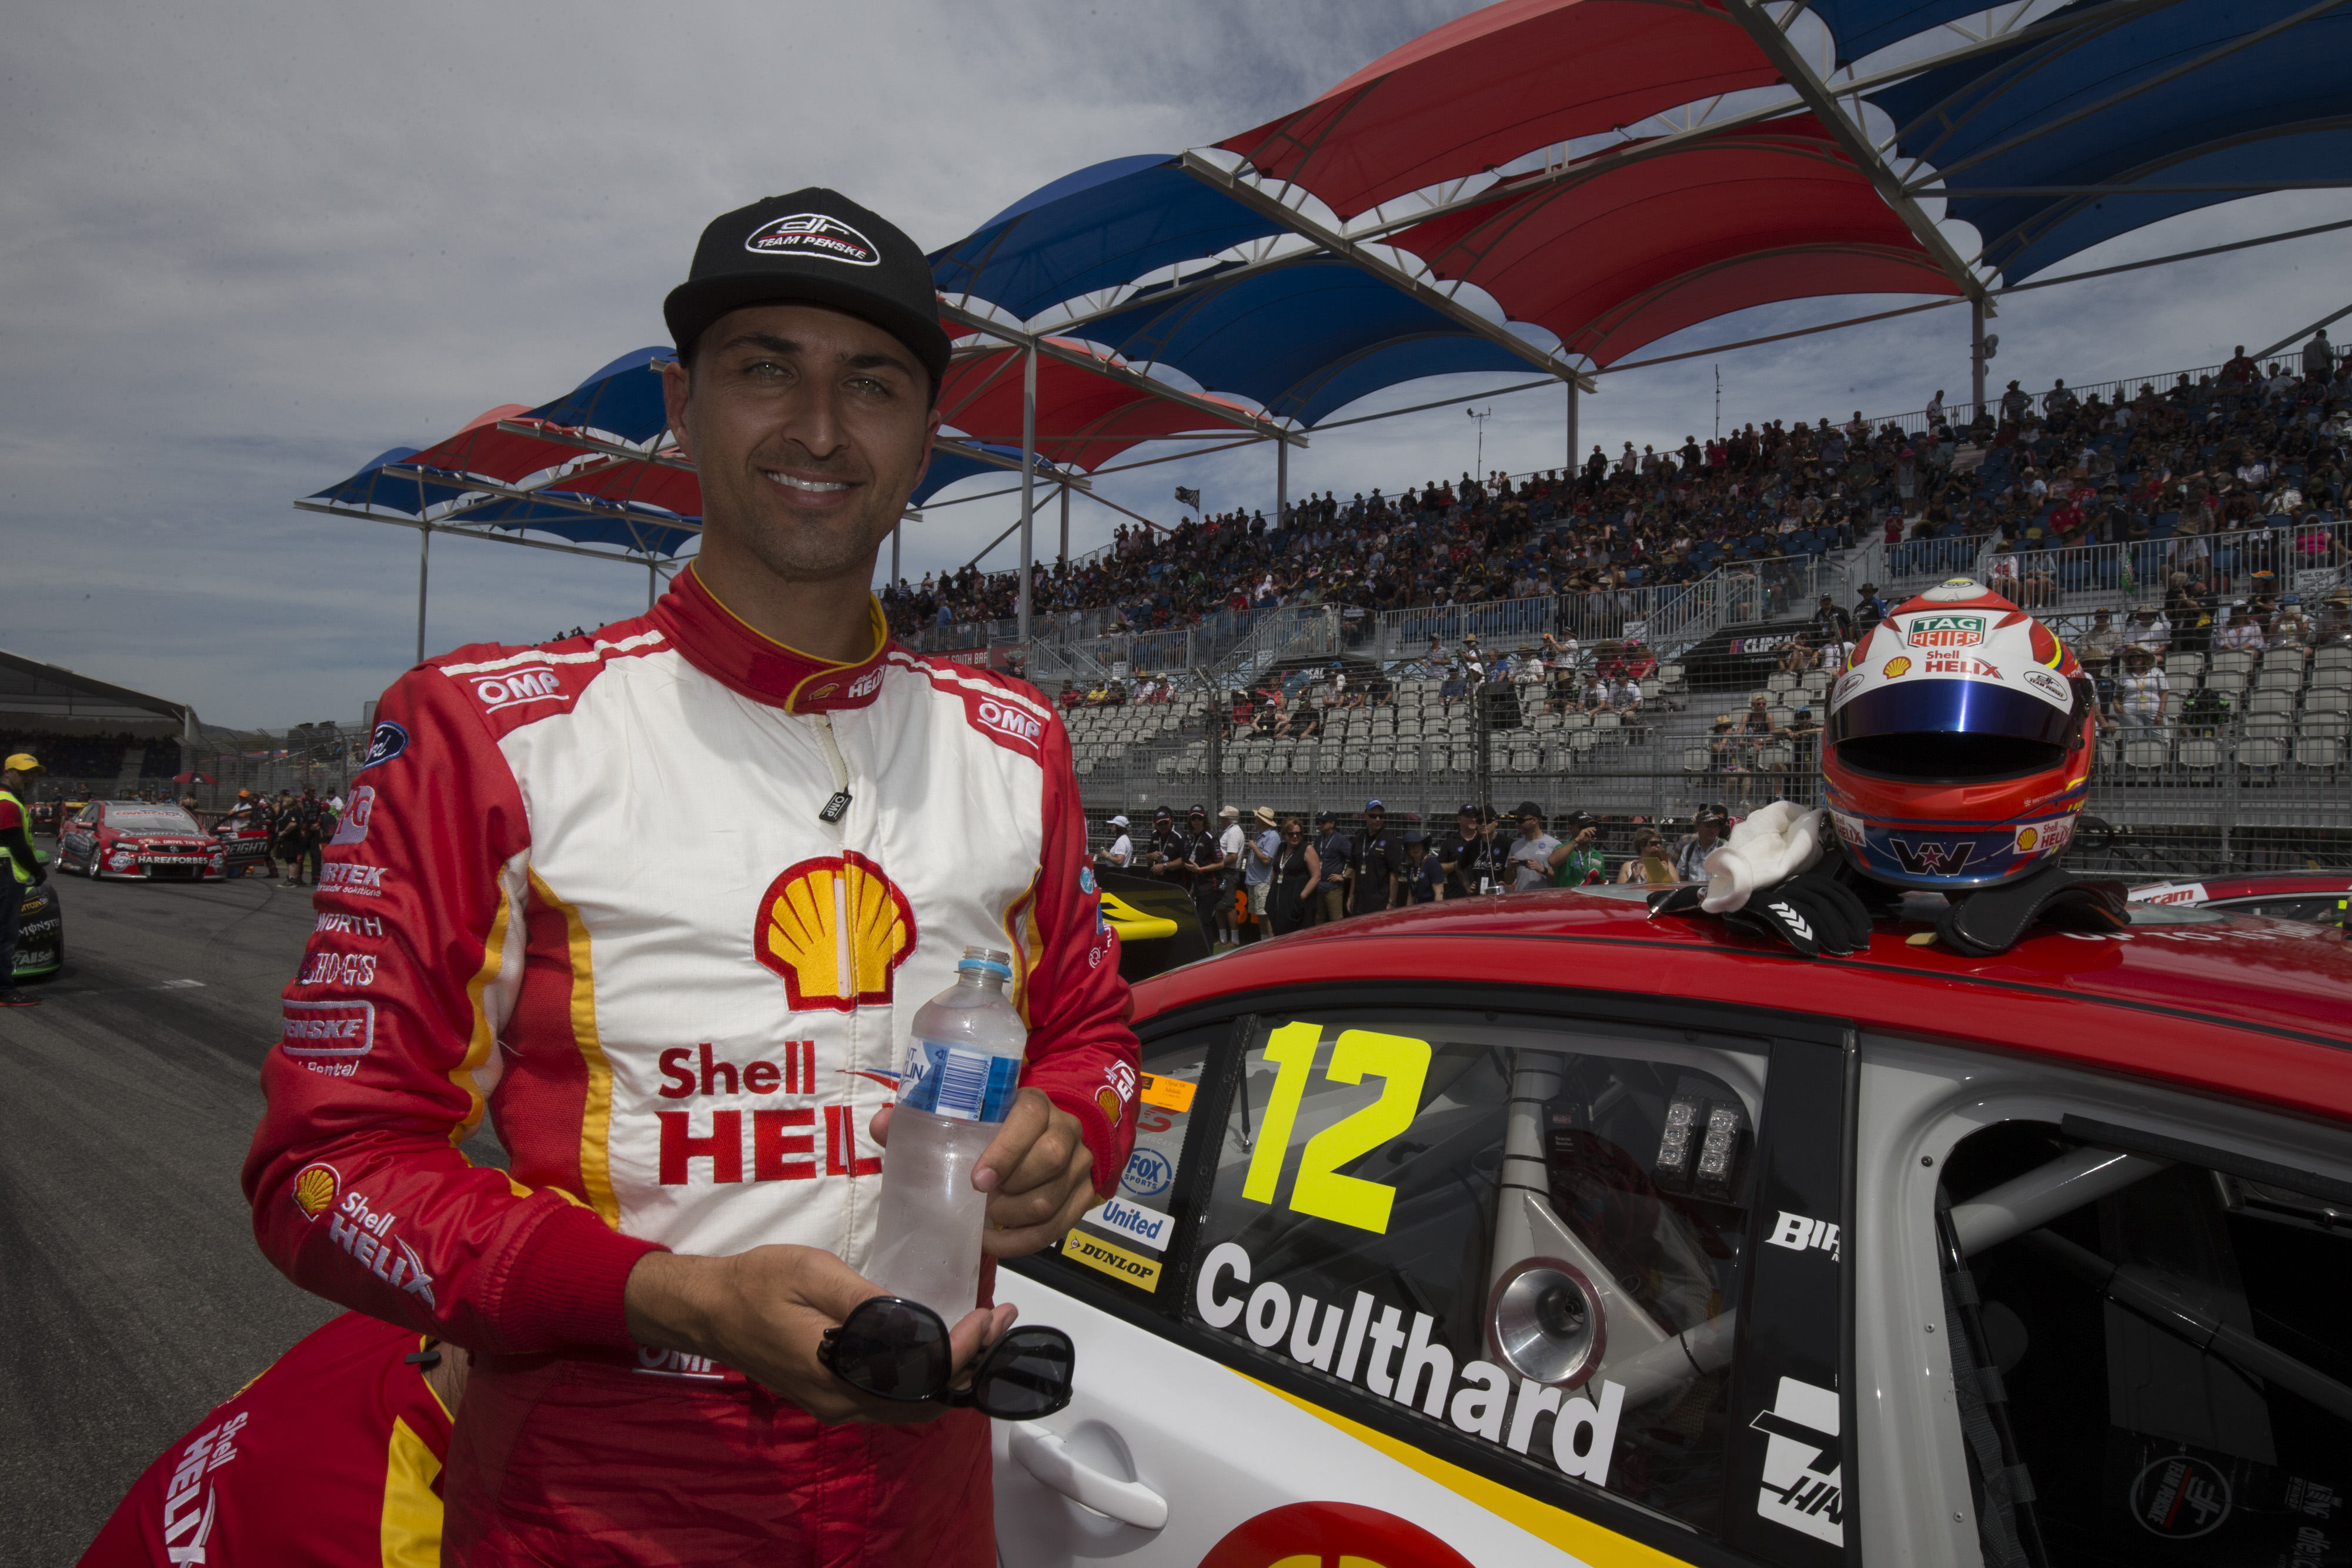 Fabian Coulthard of Team DJR Penski during the Clipsal 500,  at the Adelaide Street Circuit, Adelaide, South Australia, March 05, 2016.